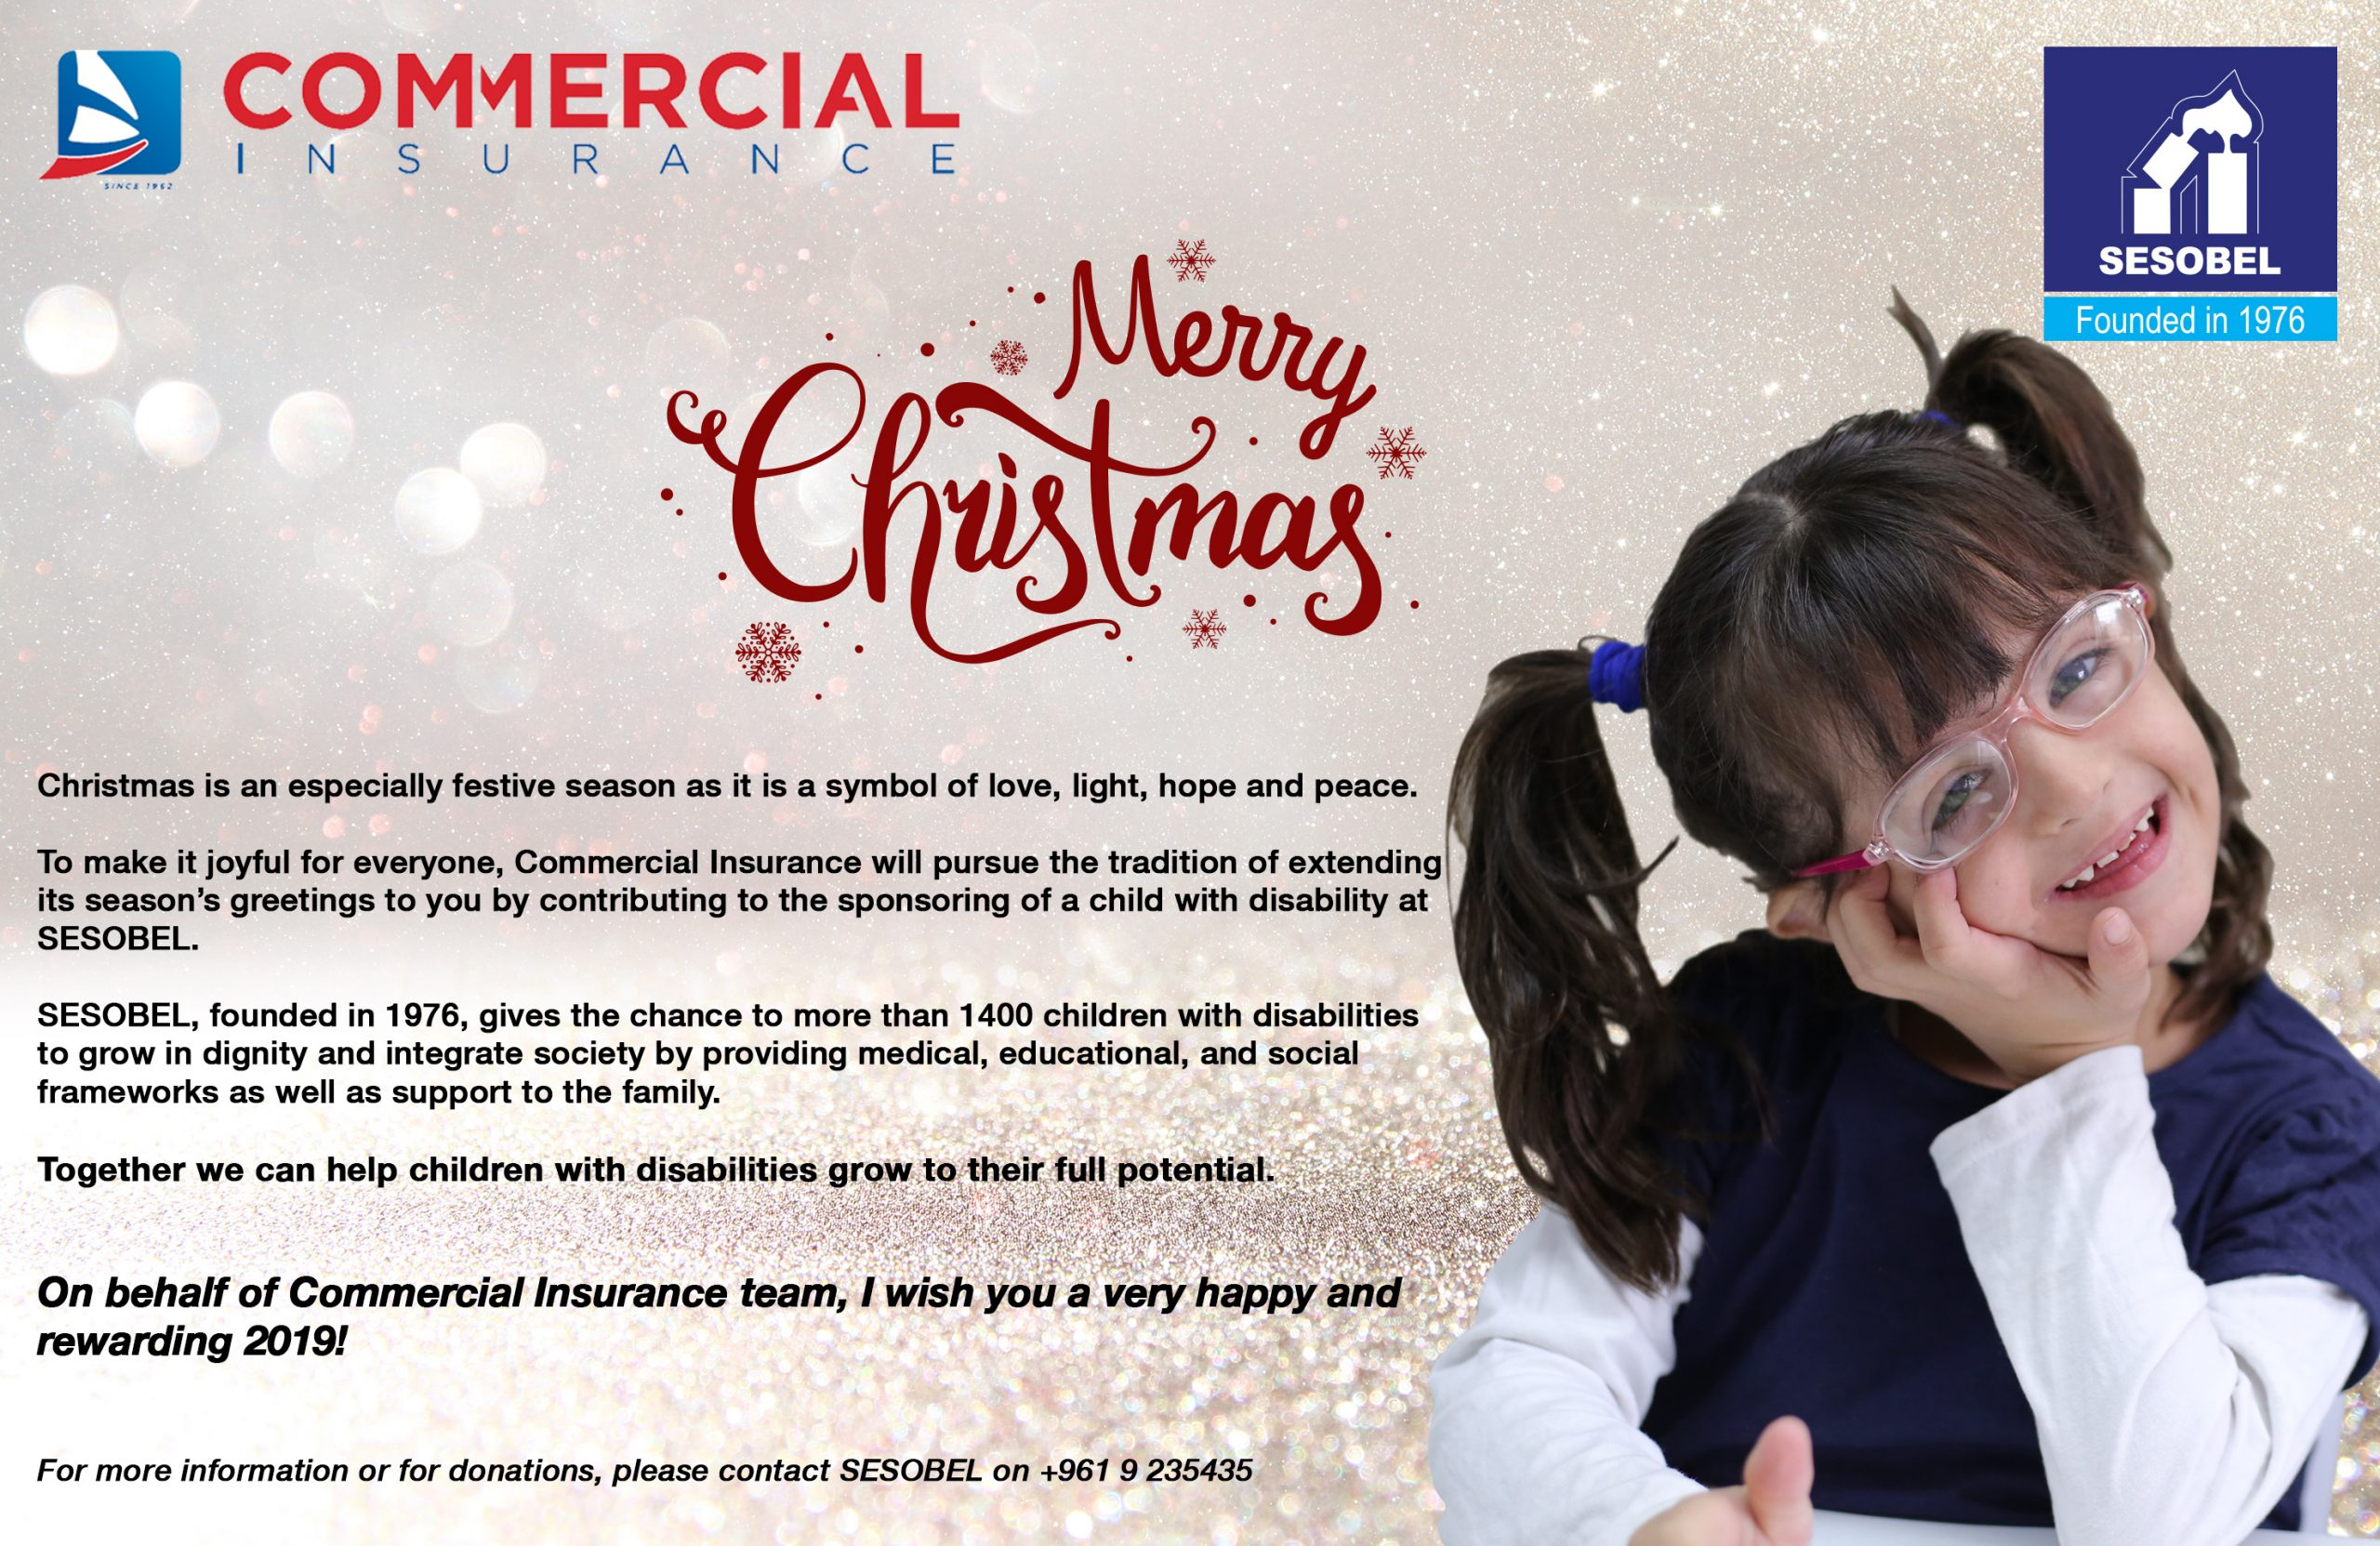 Commercial Insurance - End of Year Communication